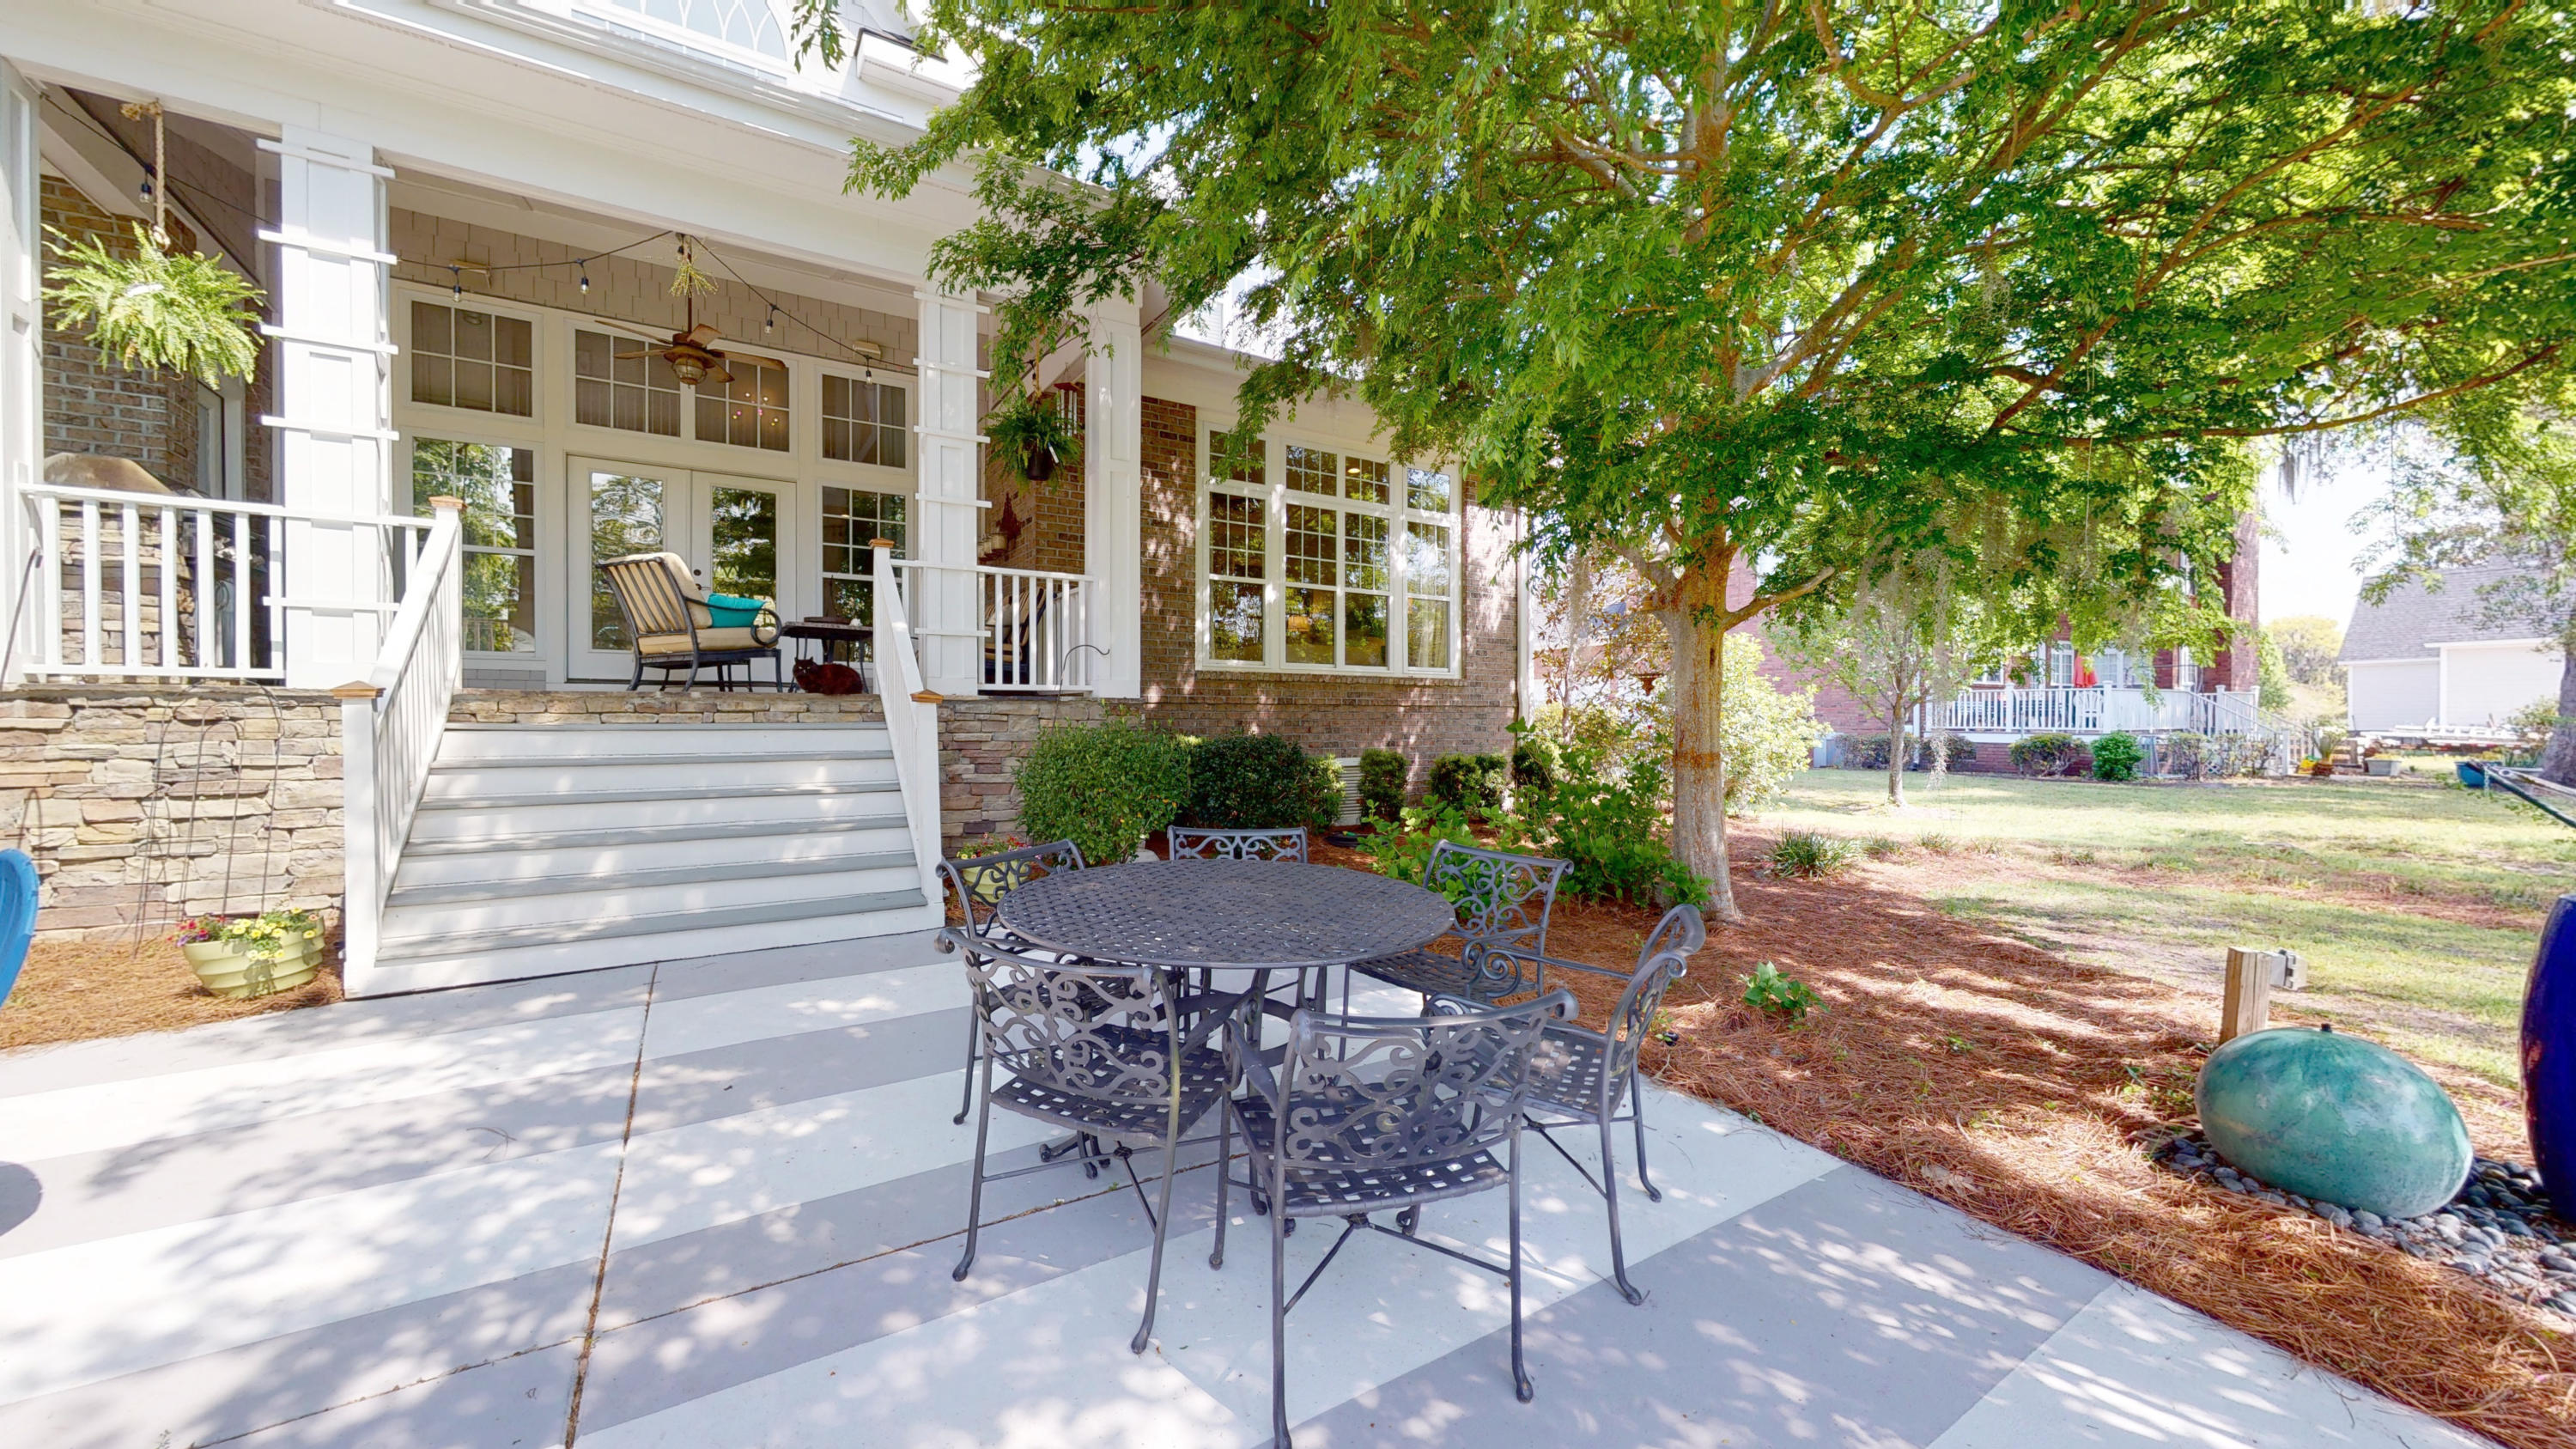 Coosaw Creek Country Club Homes For Sale - 4238 Club Course, North Charleston, SC - 11